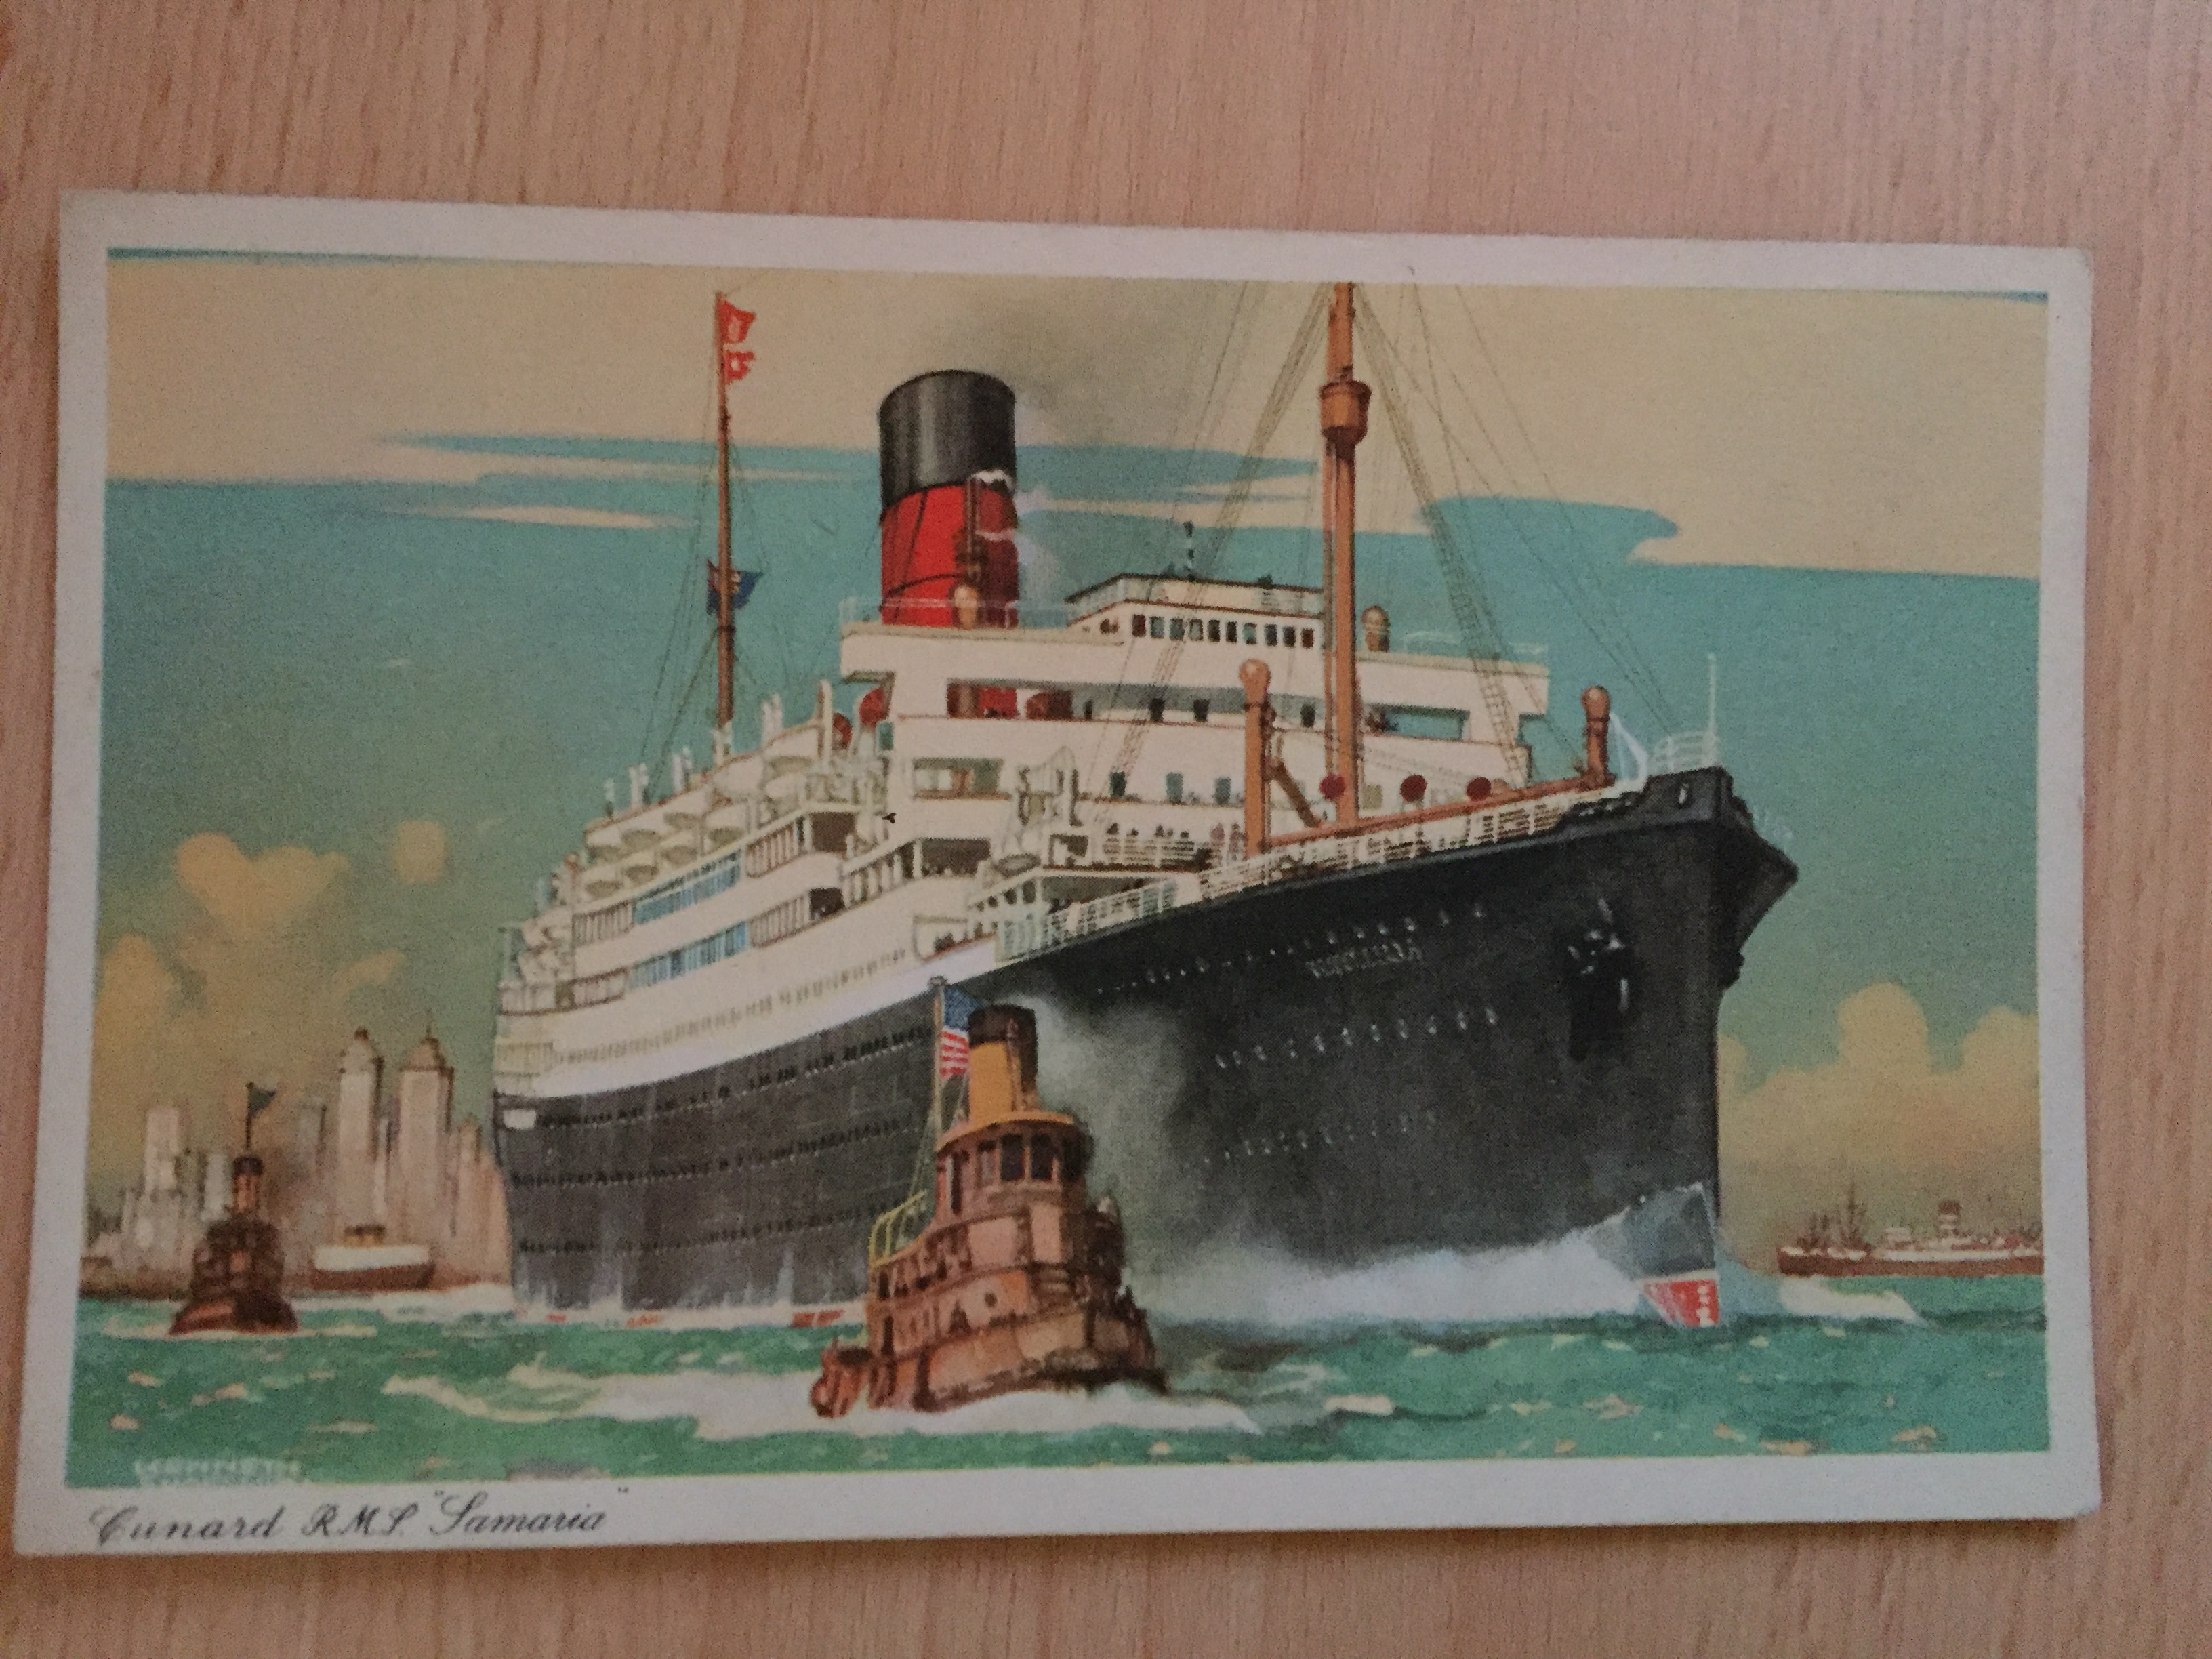 UNUSED COLOUR POSTCARD FROM THE WHITE STAR LINE VESSEL RMS SAMARIA